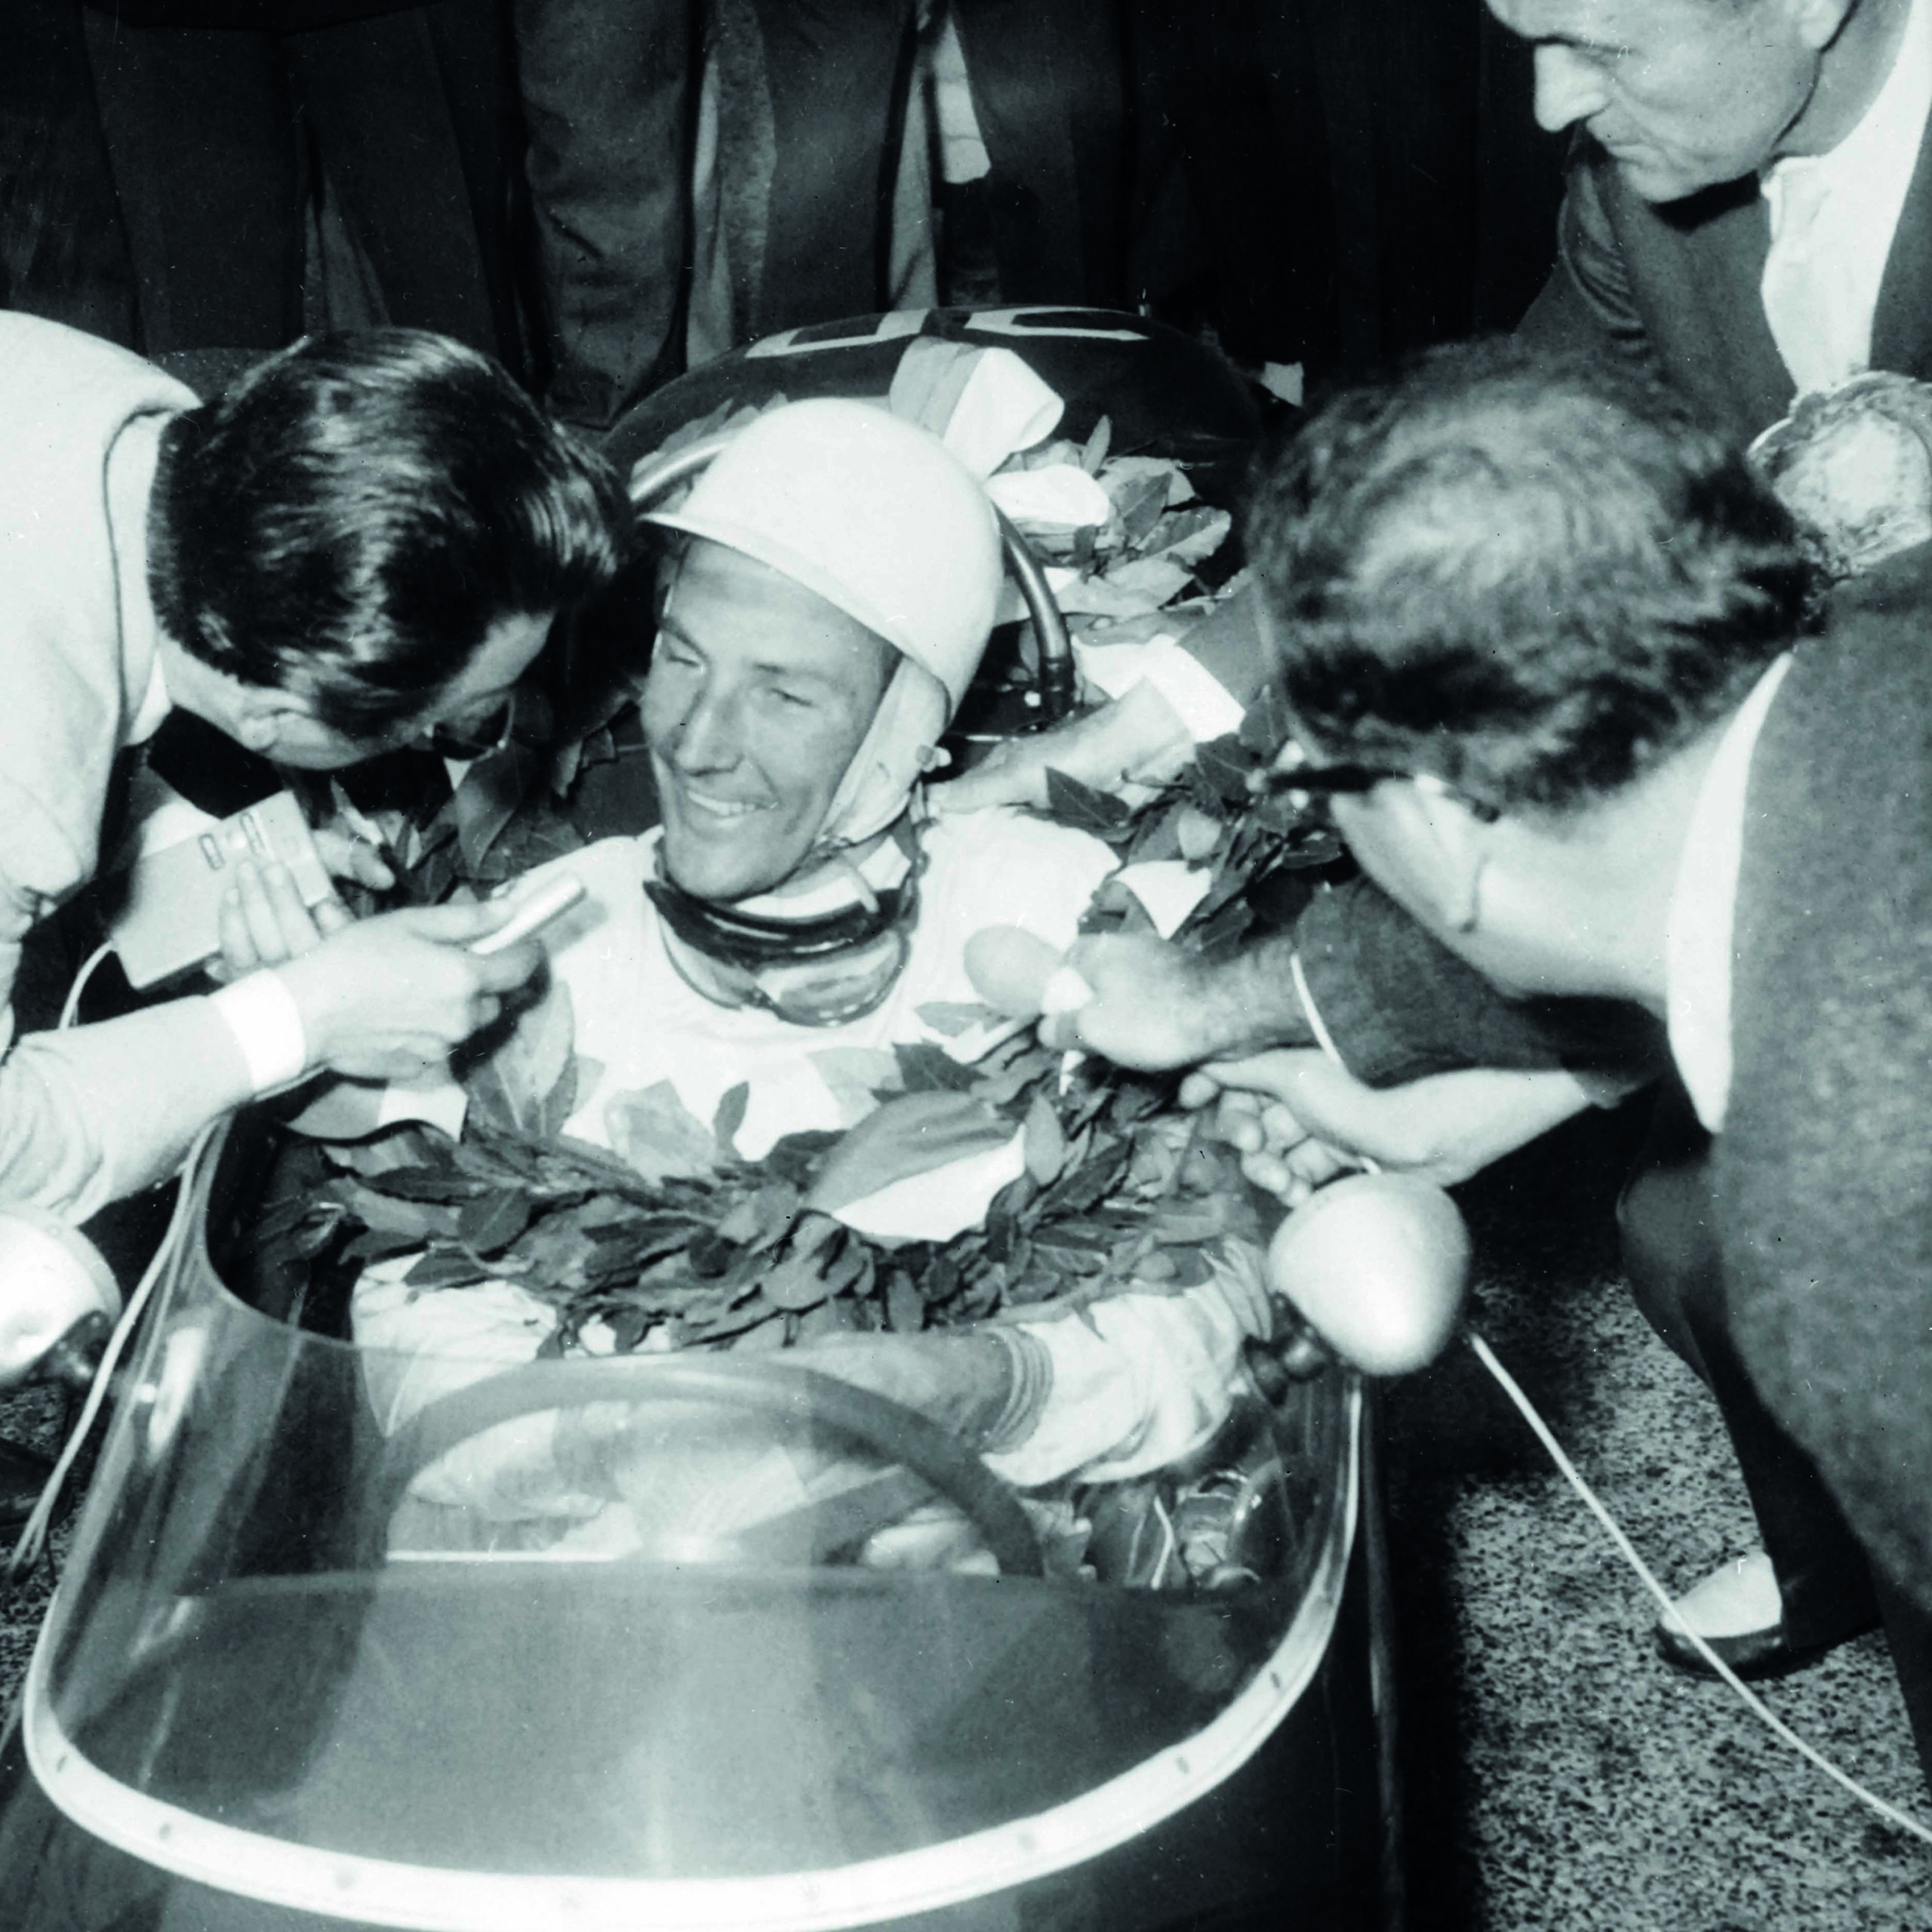 Stirling-Moss-in-his-car-surrounded-by-reporters-after-winning-the-1961-Monaco-Grand-Prix